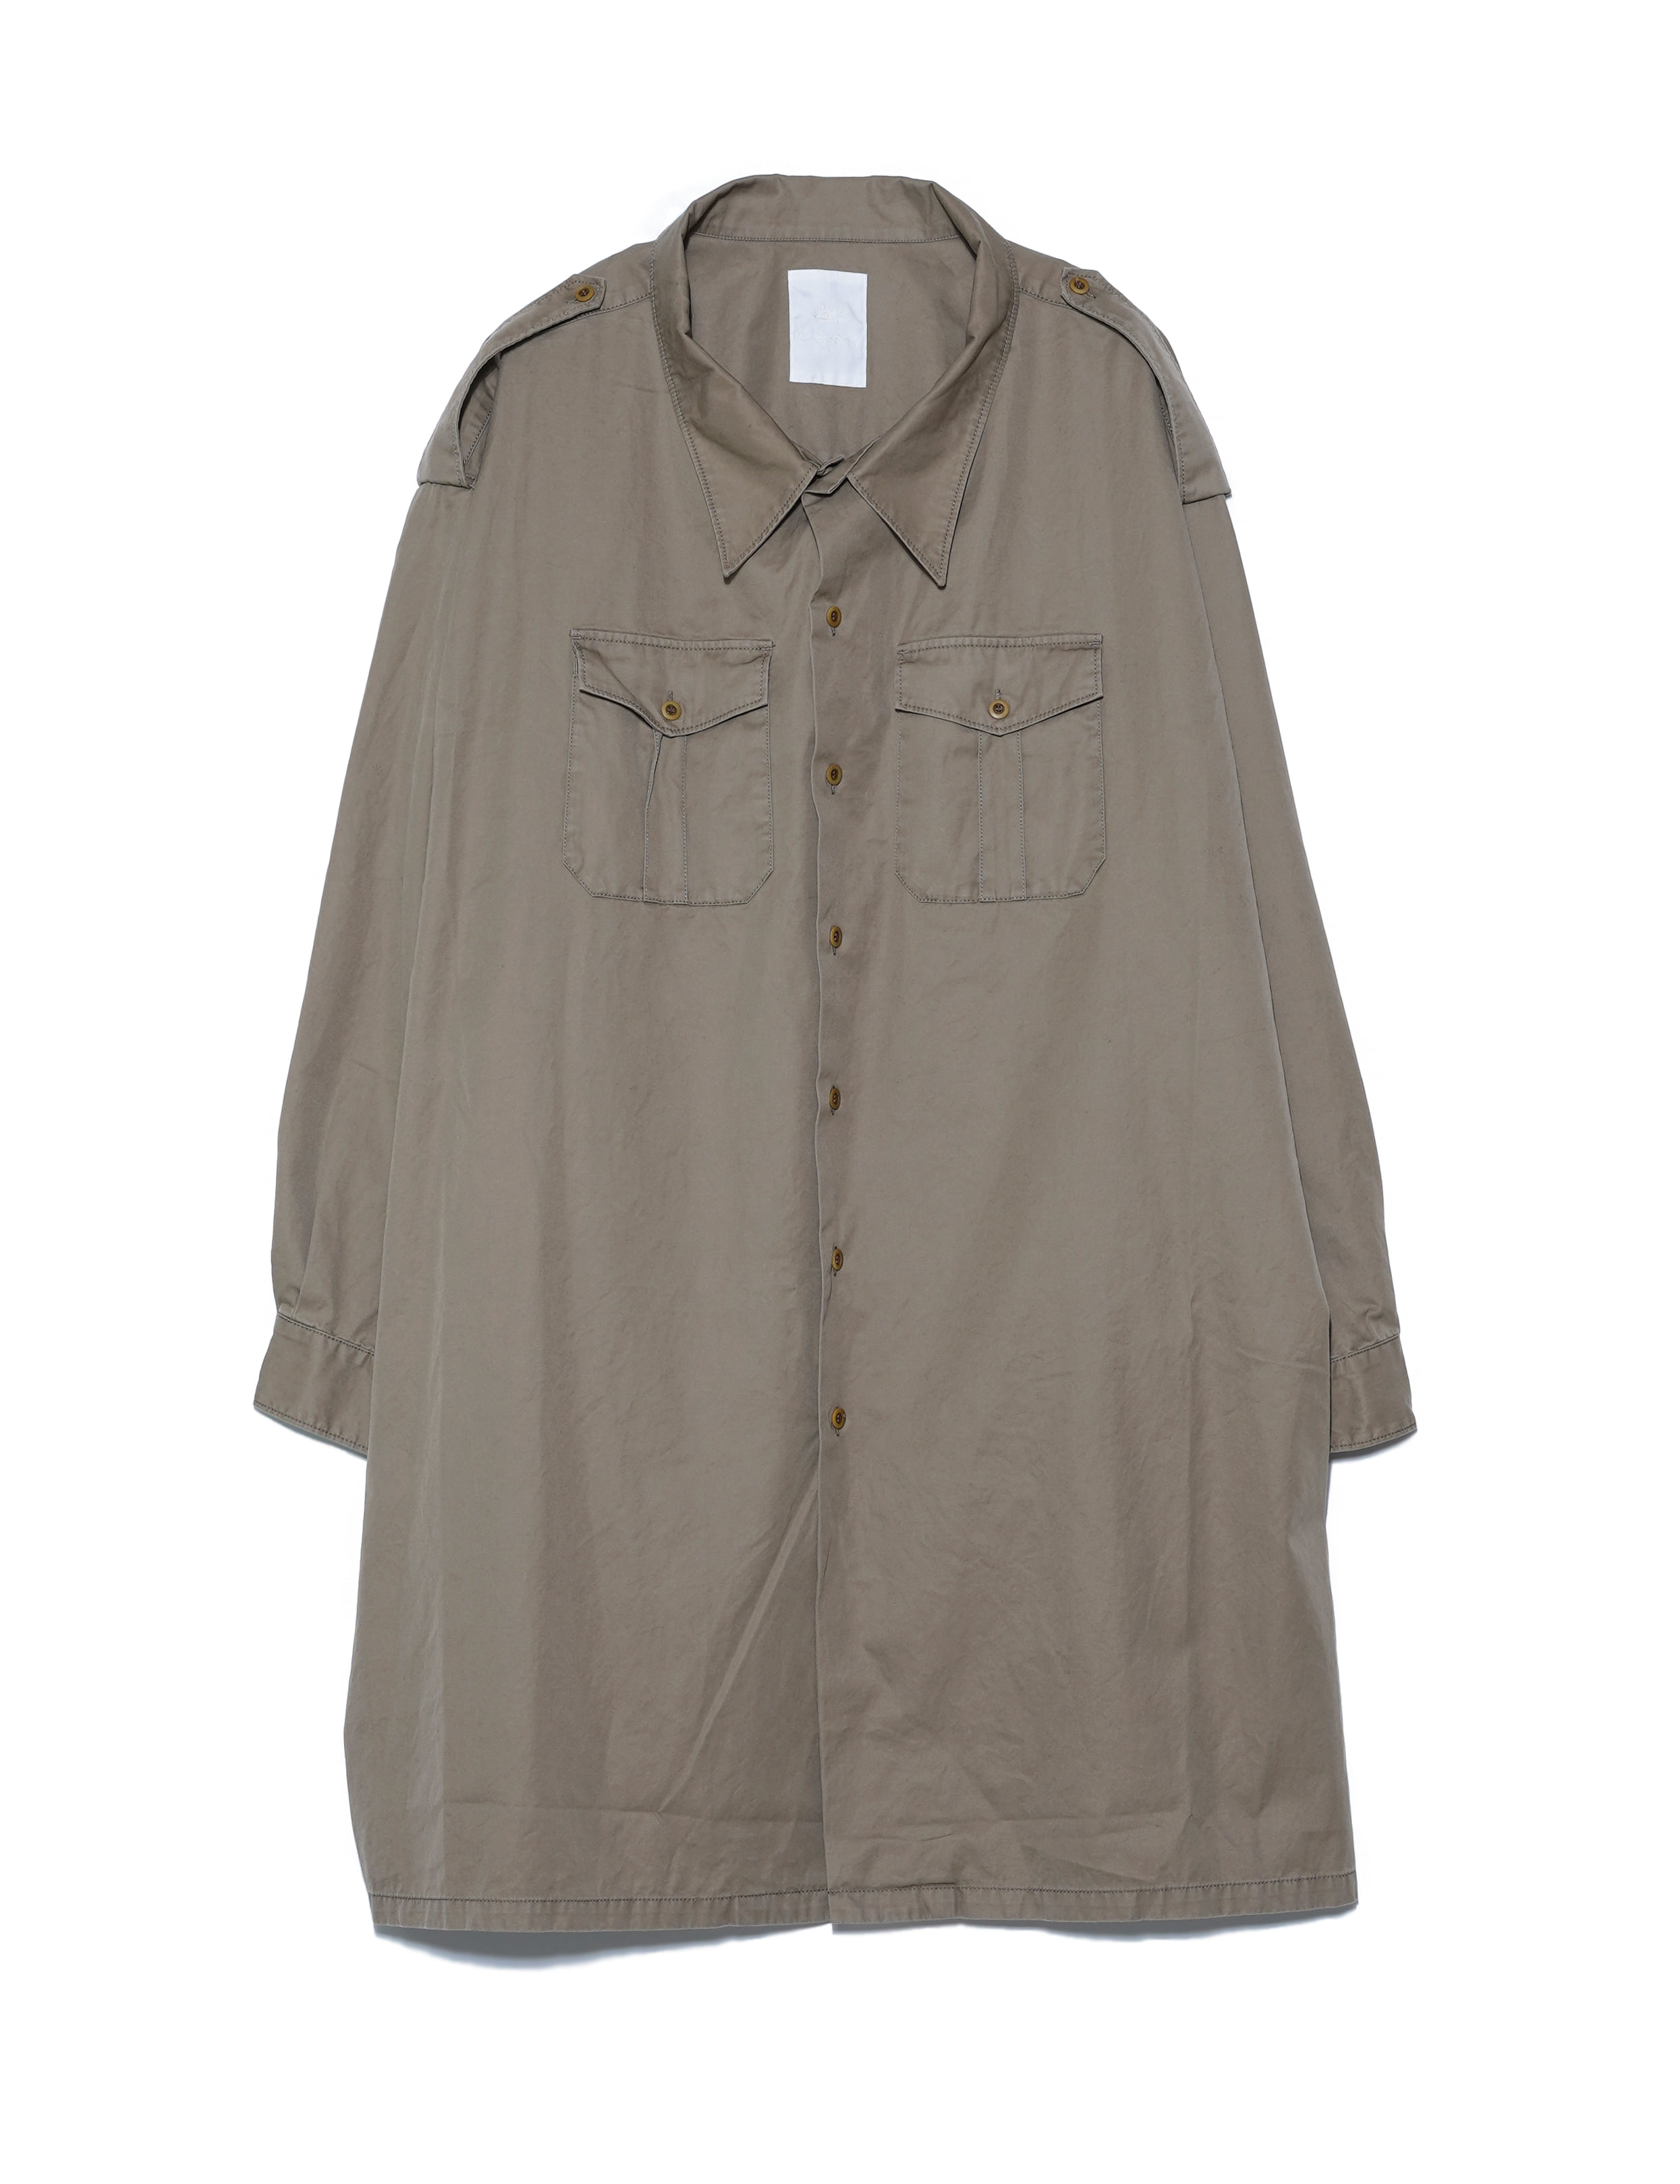 5X SHIRT/ TYPE.2 LONG (KHAKI)